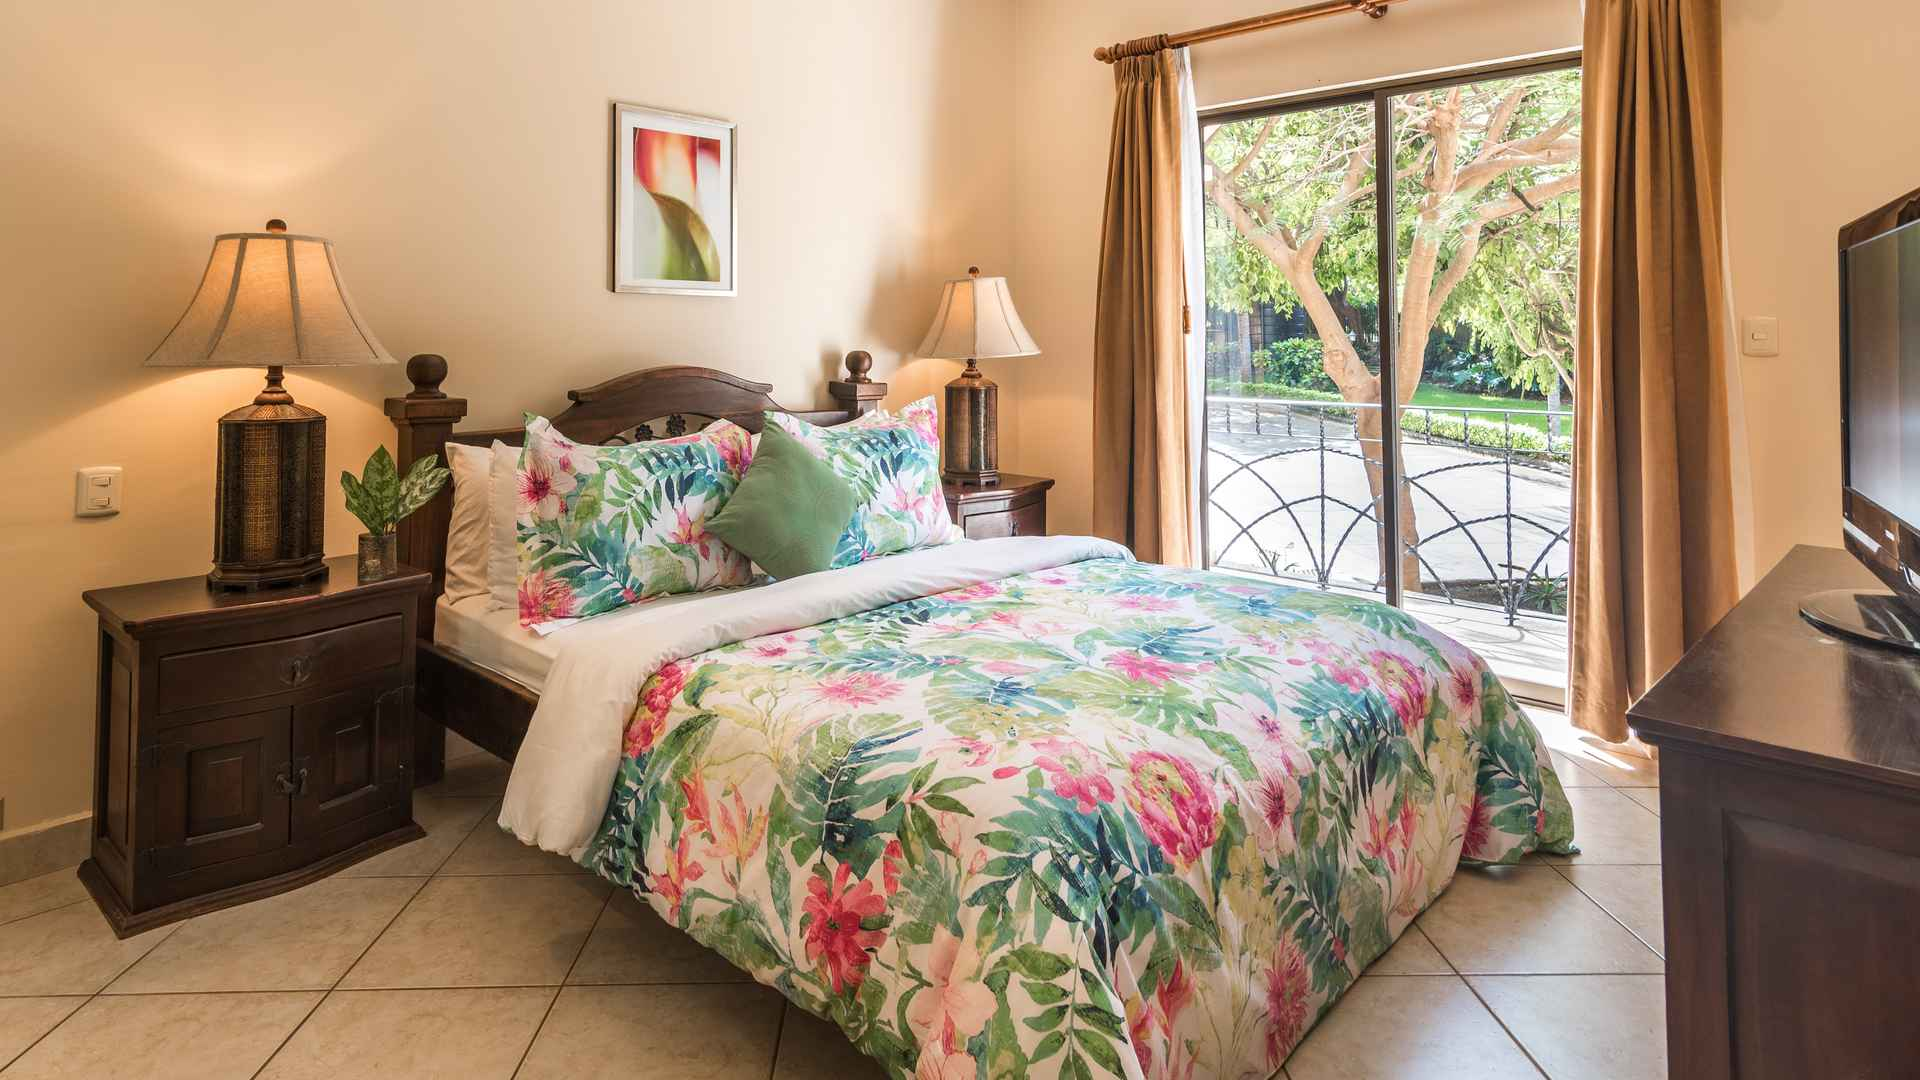 Guest bedroom with balcony